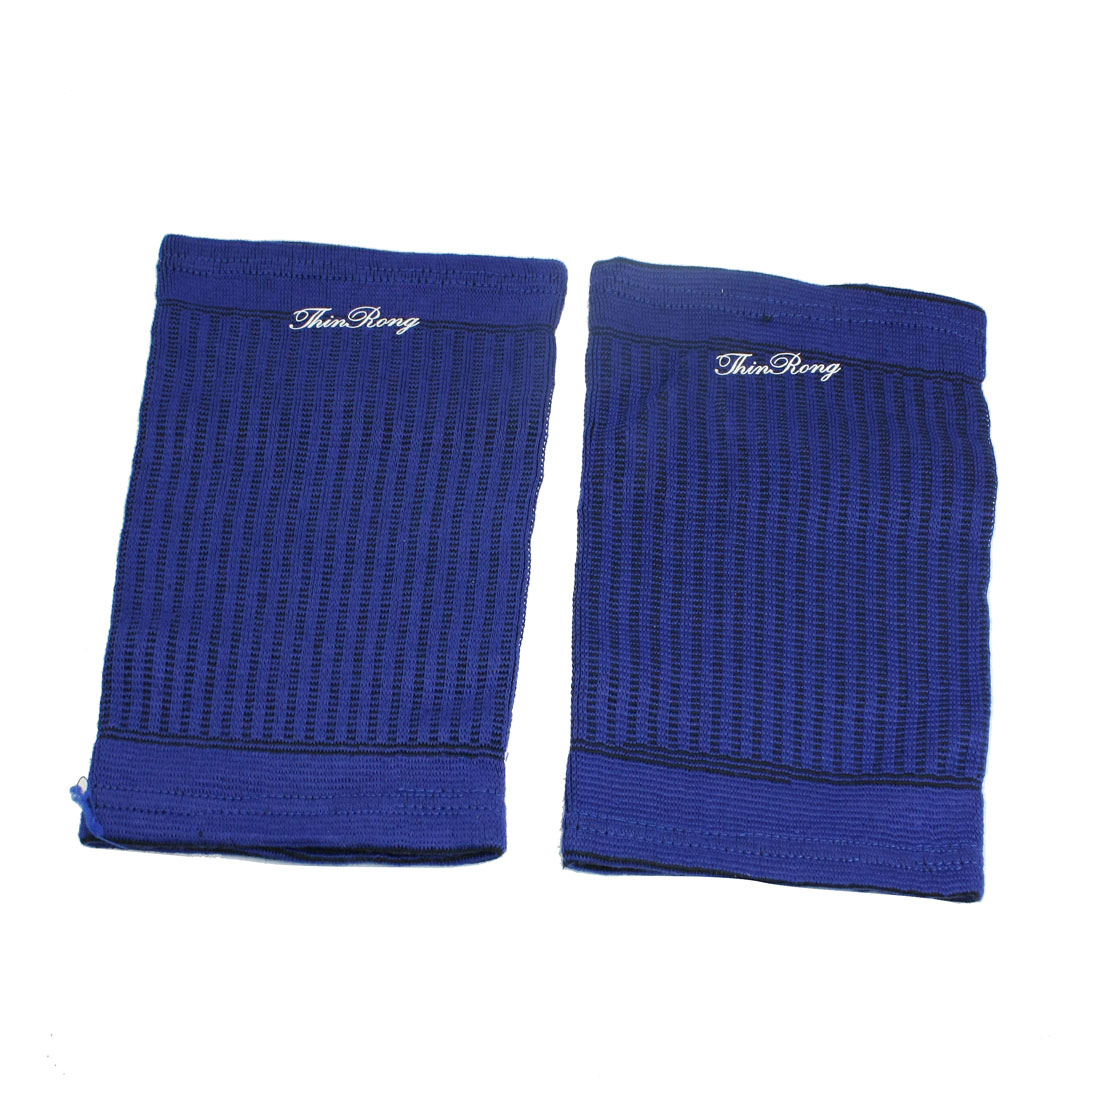 Blue Black Striped Knitted Protective Sports Bandage Brace Thigh Support Pair